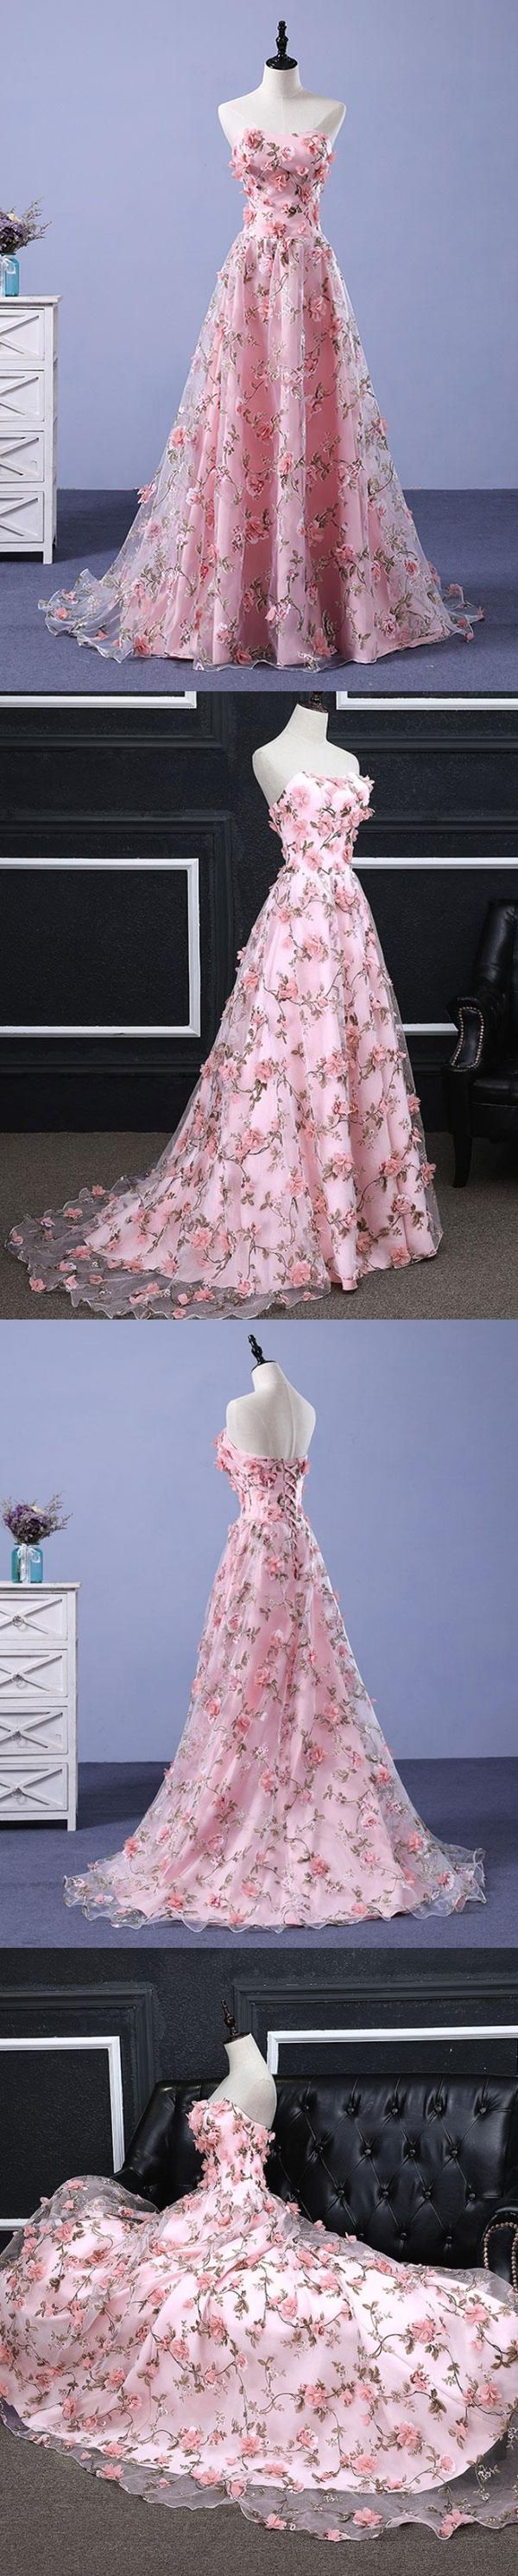 prom dresses long,prom dresses for teens,prom dresses boho,prom dresses cheap,junior prom dresses,beautiful prom dresses,prom dresses flowy,prom dresses 2018,gorgeous prom dresses,prom dresses unique,prom dresses elegant,prom dresses graduacion,prom dresses classy,prom dresses modest,prom dresses simple,prom dresses strapless,prom dresses lace,prom dresses a line #annapromdress #prom #promdress #evening #eveningdress #dance #longdress #longpromdress #fashion #style #dress